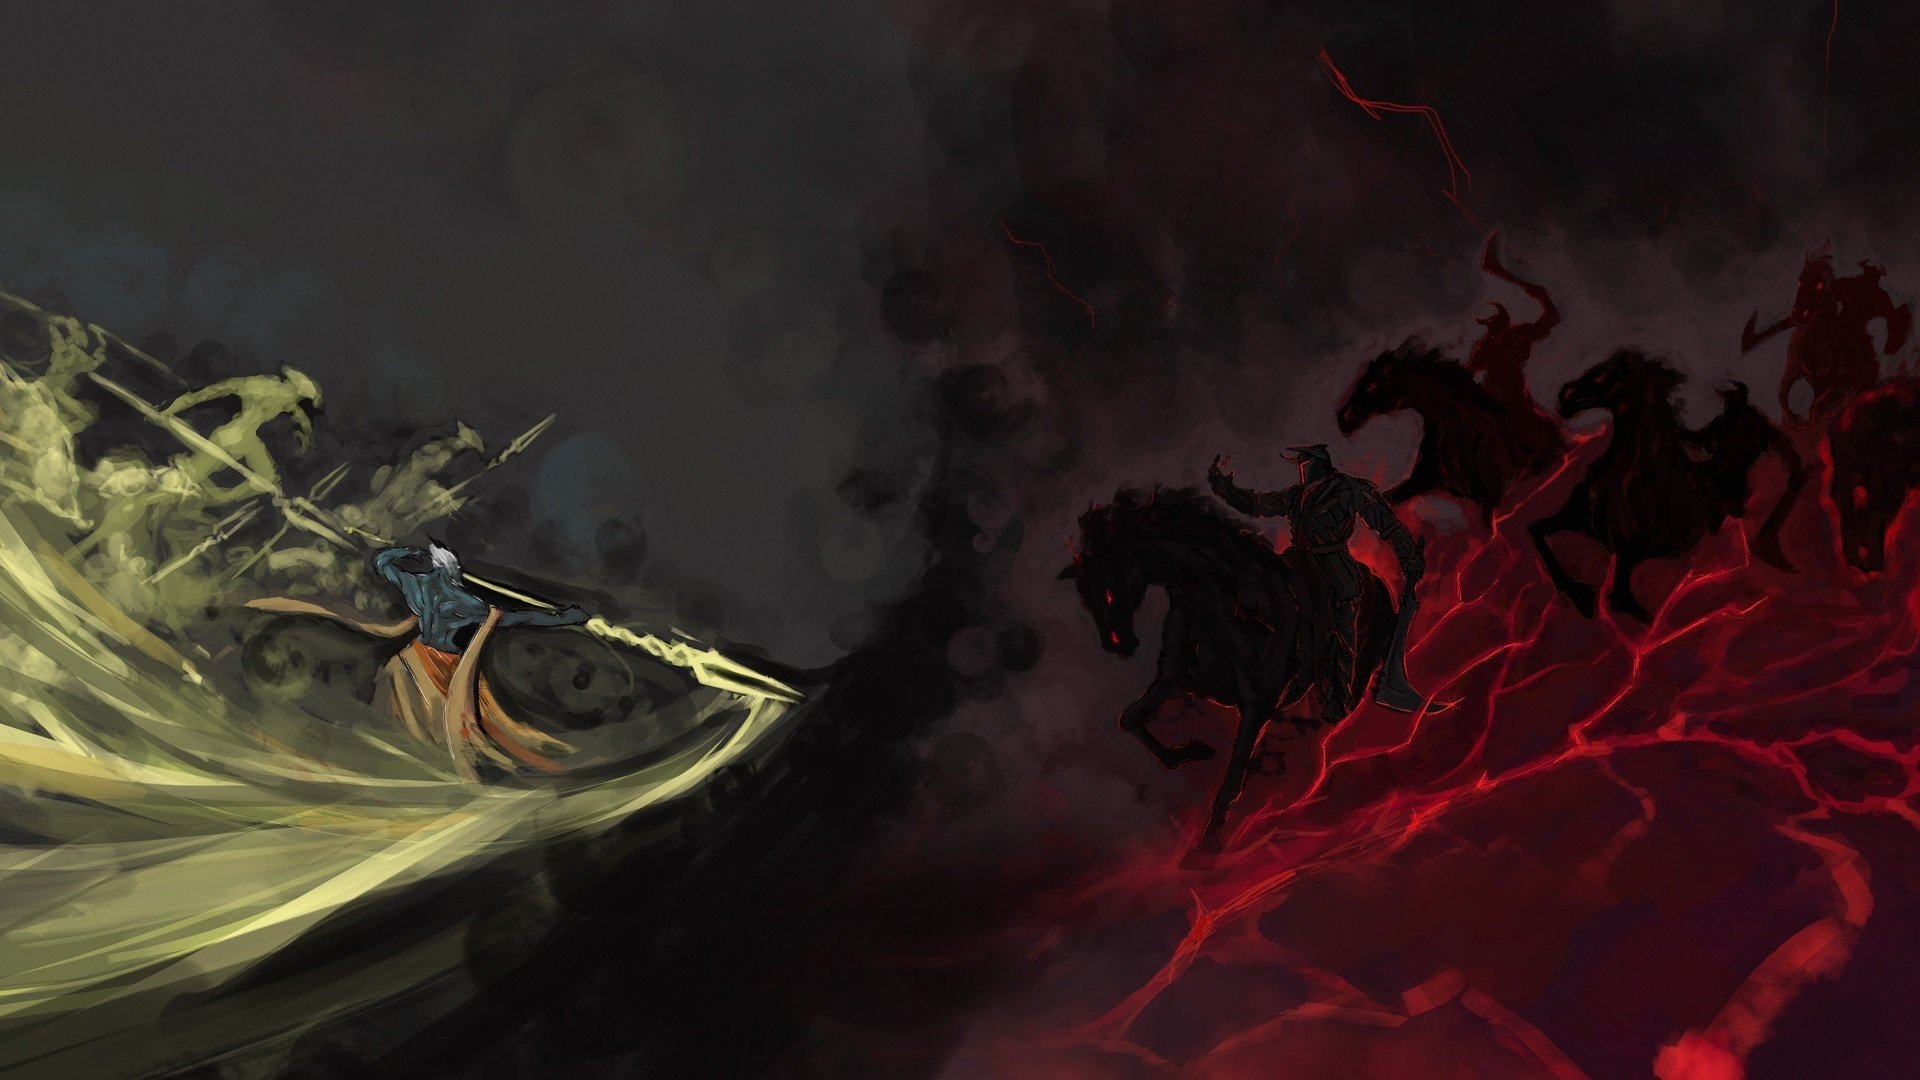 Dota 2 Chaos Knight Wallpapers Desktop Background Is Cool Wallpapers